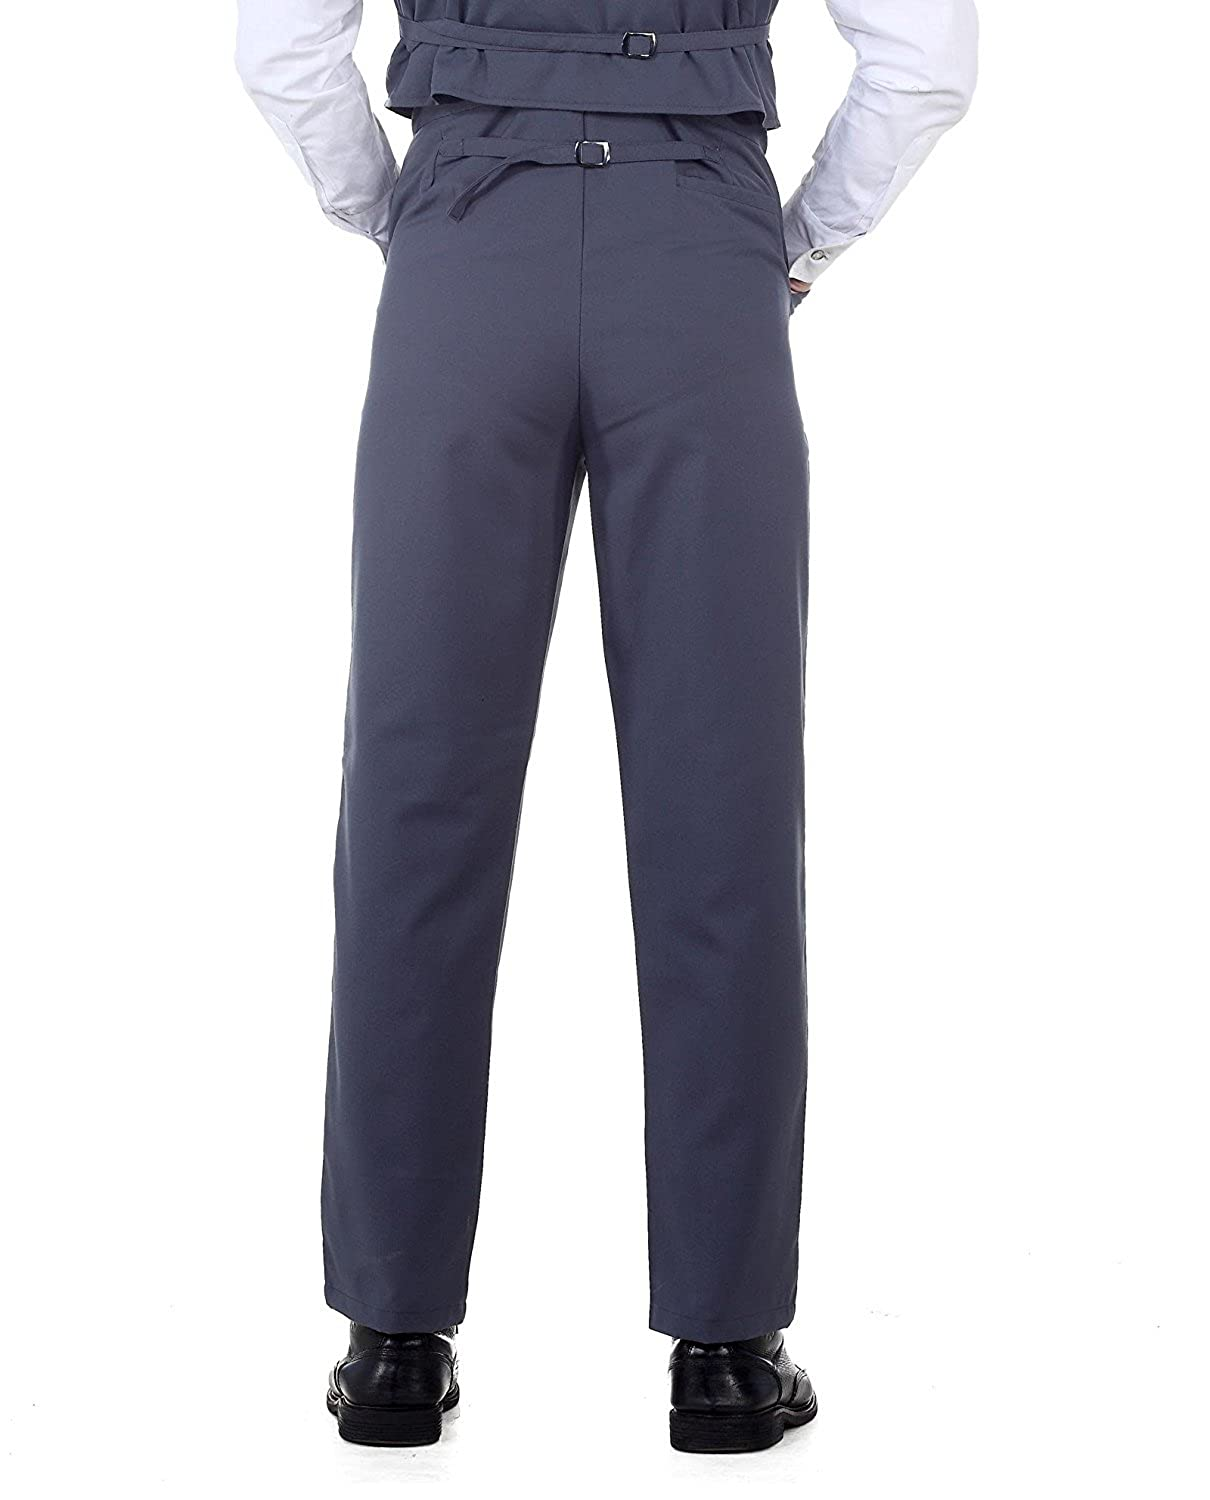 Men's Steampunk Clothing, Costumes, Fashion Steampunk Victorian Costume Canvas Classic Pants Grey $37.95 AT vintagedancer.com